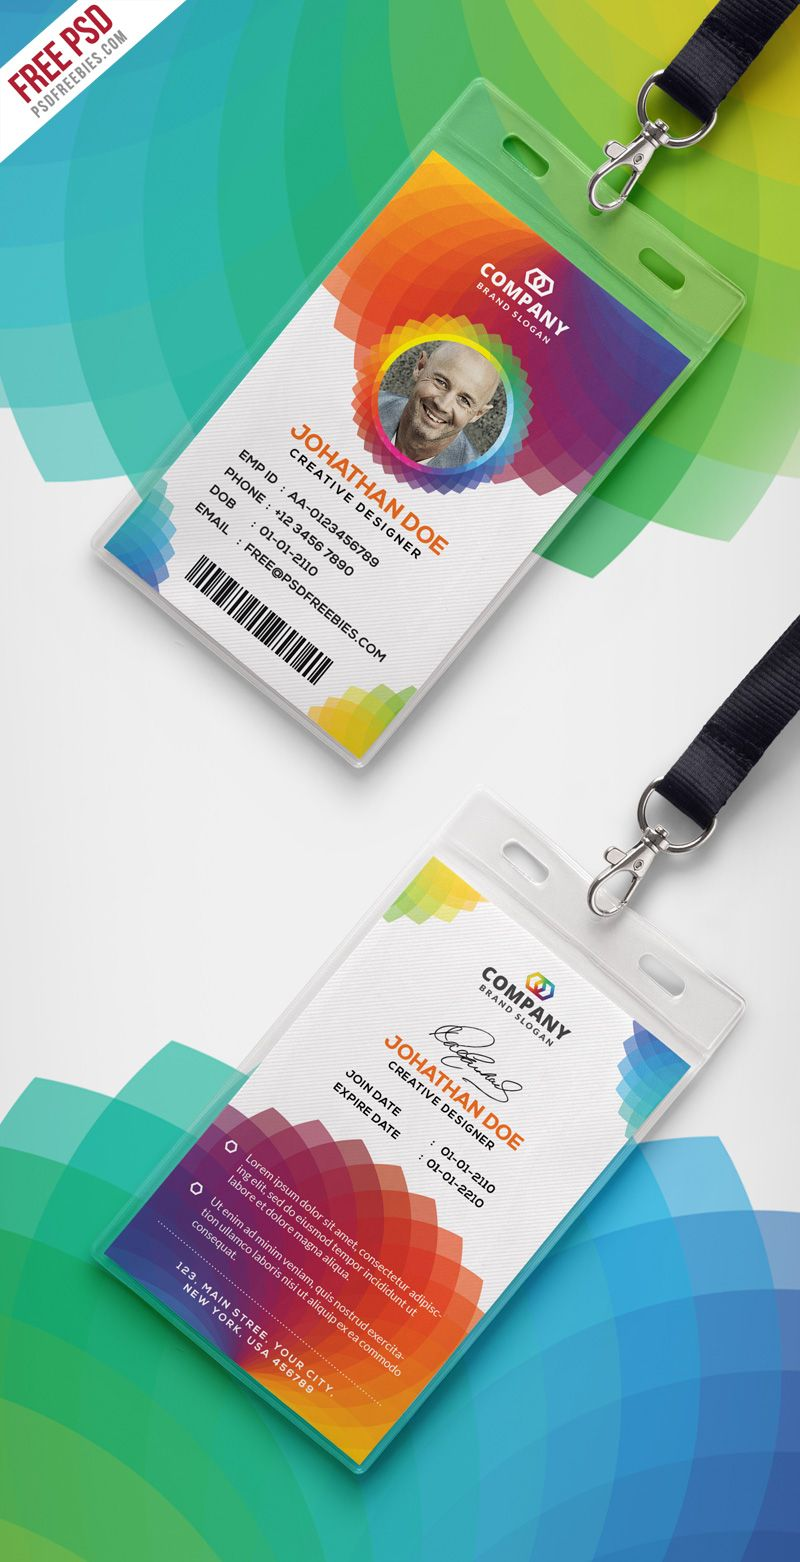 Corporate Branding Identity Card Free PSD | Corporate offices, Psd ...